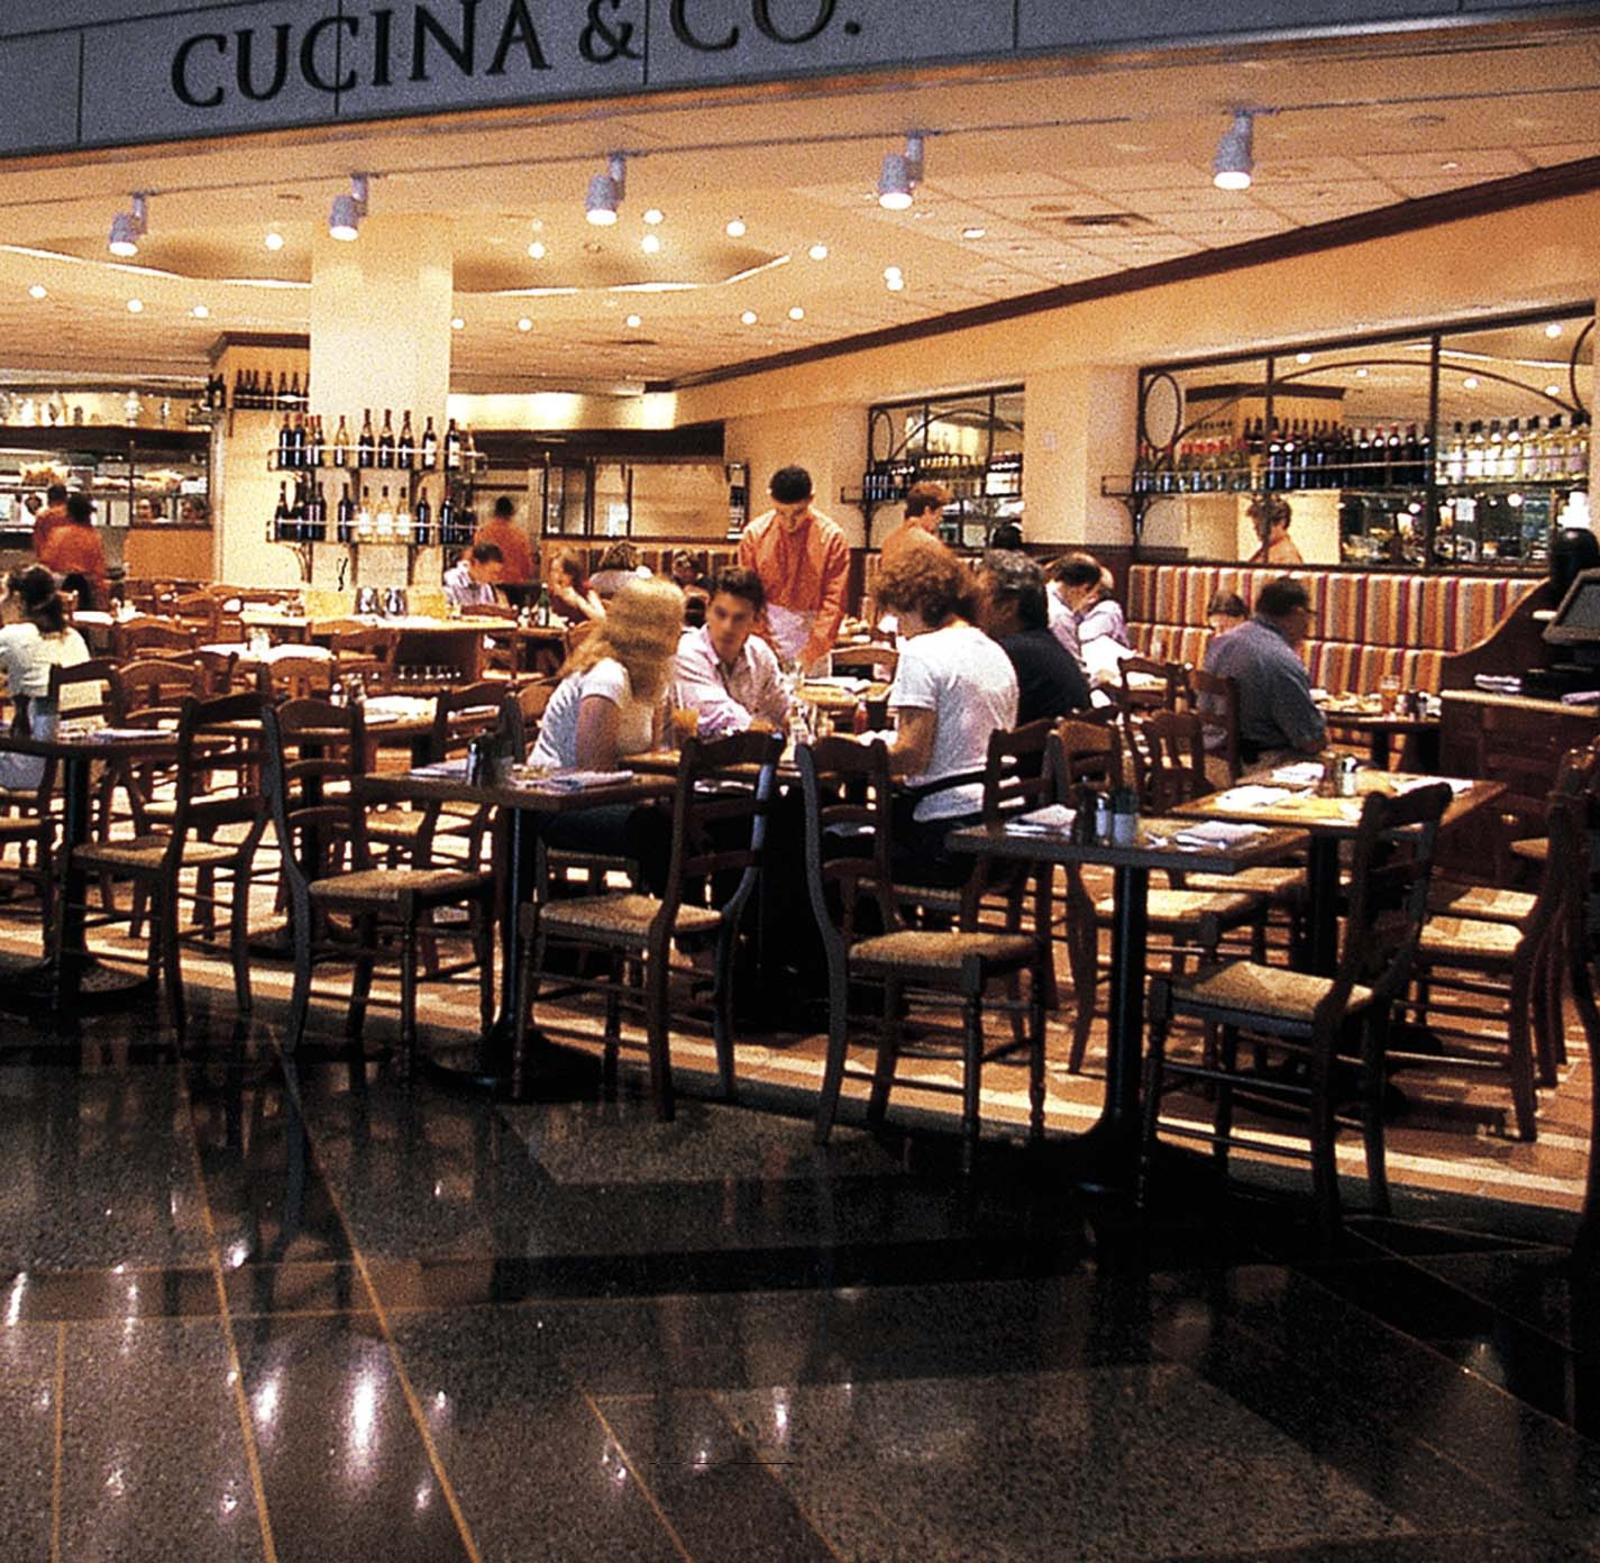 Cucina Restaurant Rockefeller Center Cucina Co At Rockefeller Center Casual Dining In Nyc